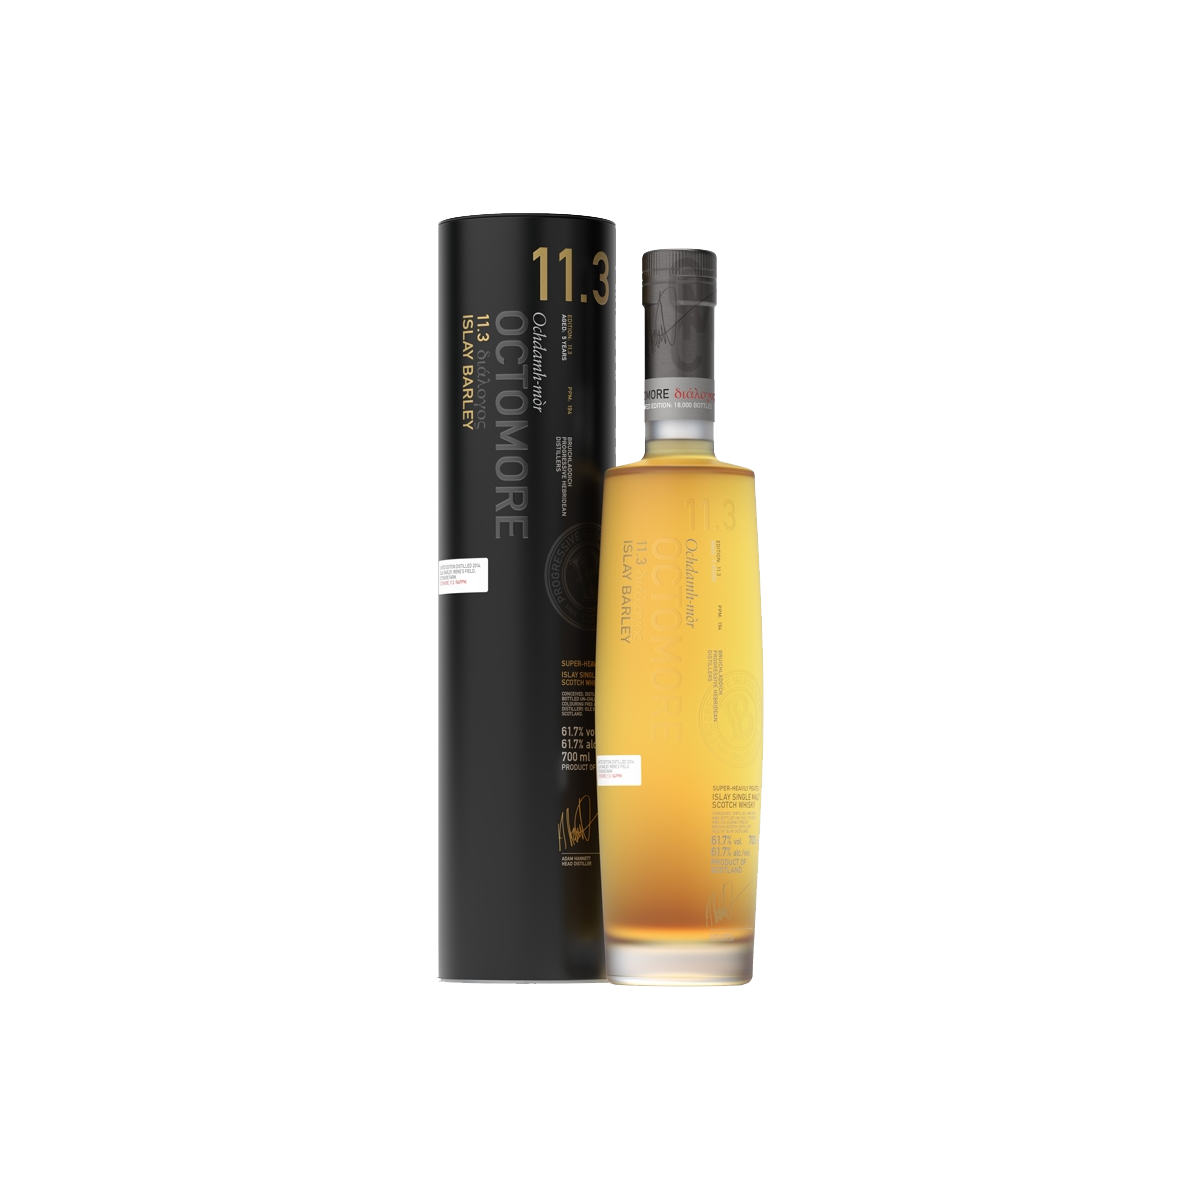 Octomore 11.3 Whisky 61,7 %